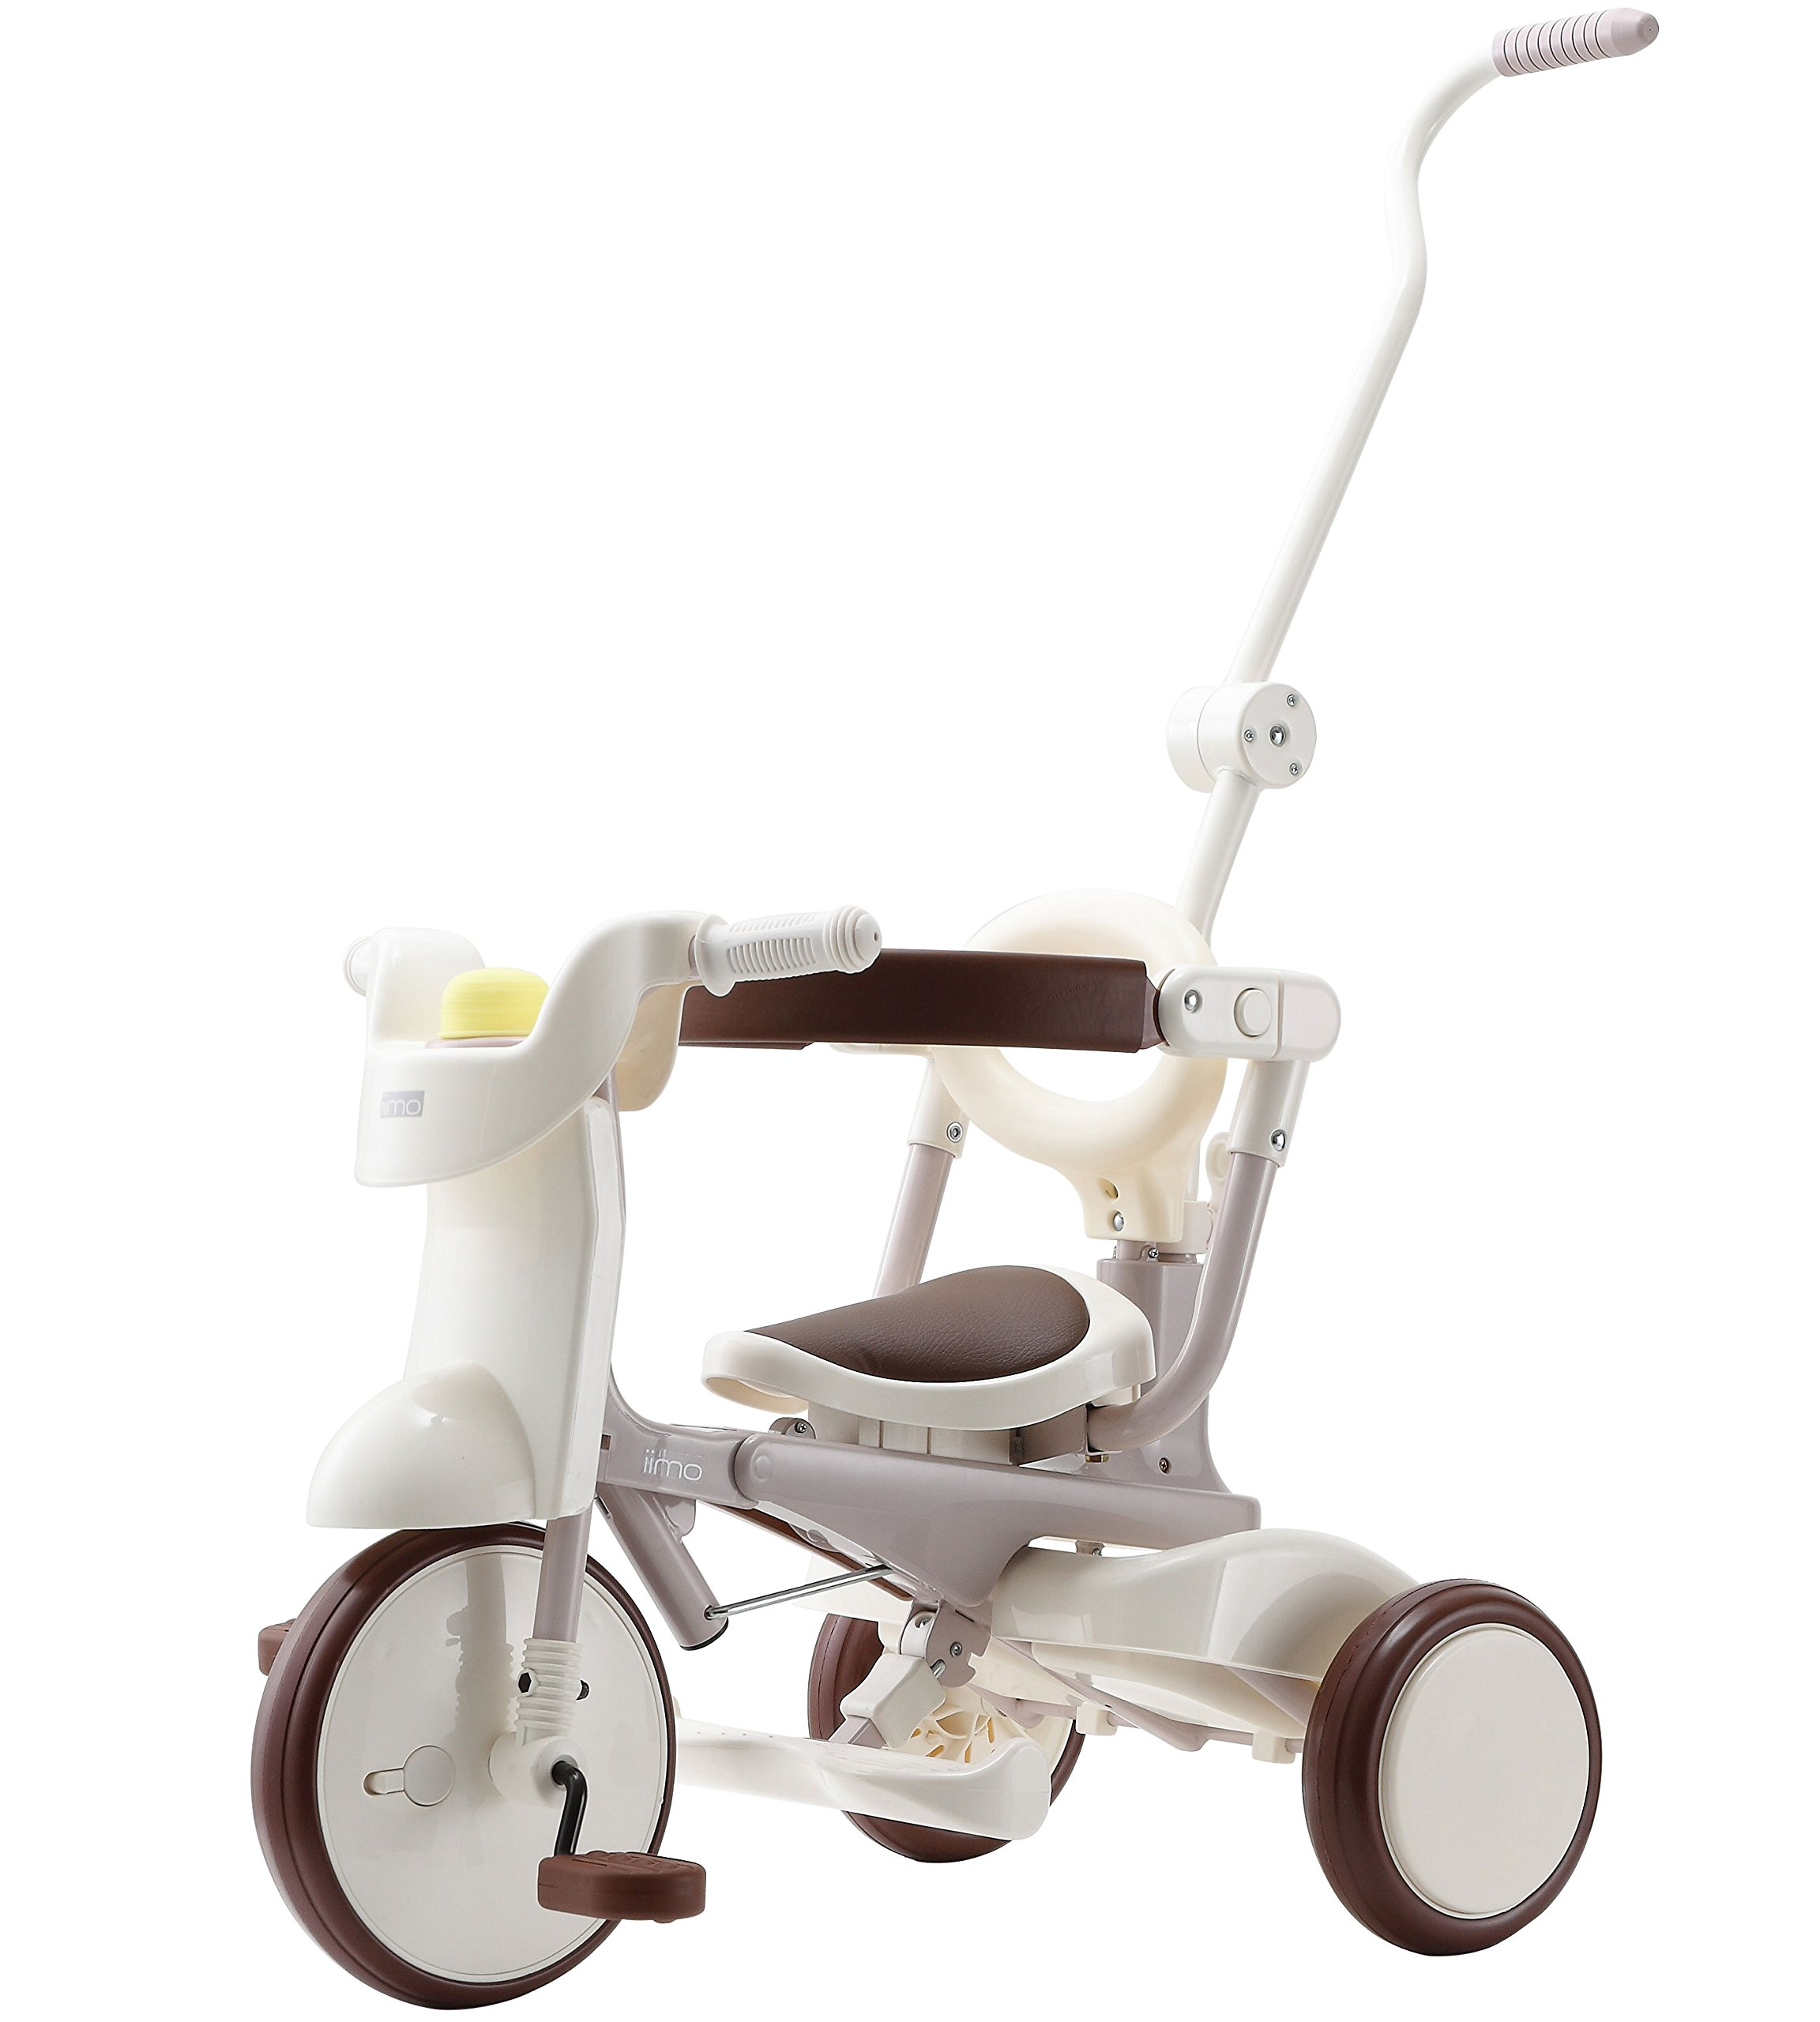 M&M's Tricycle iimo tricycle 02 Comfort 1040 (Gentle White)